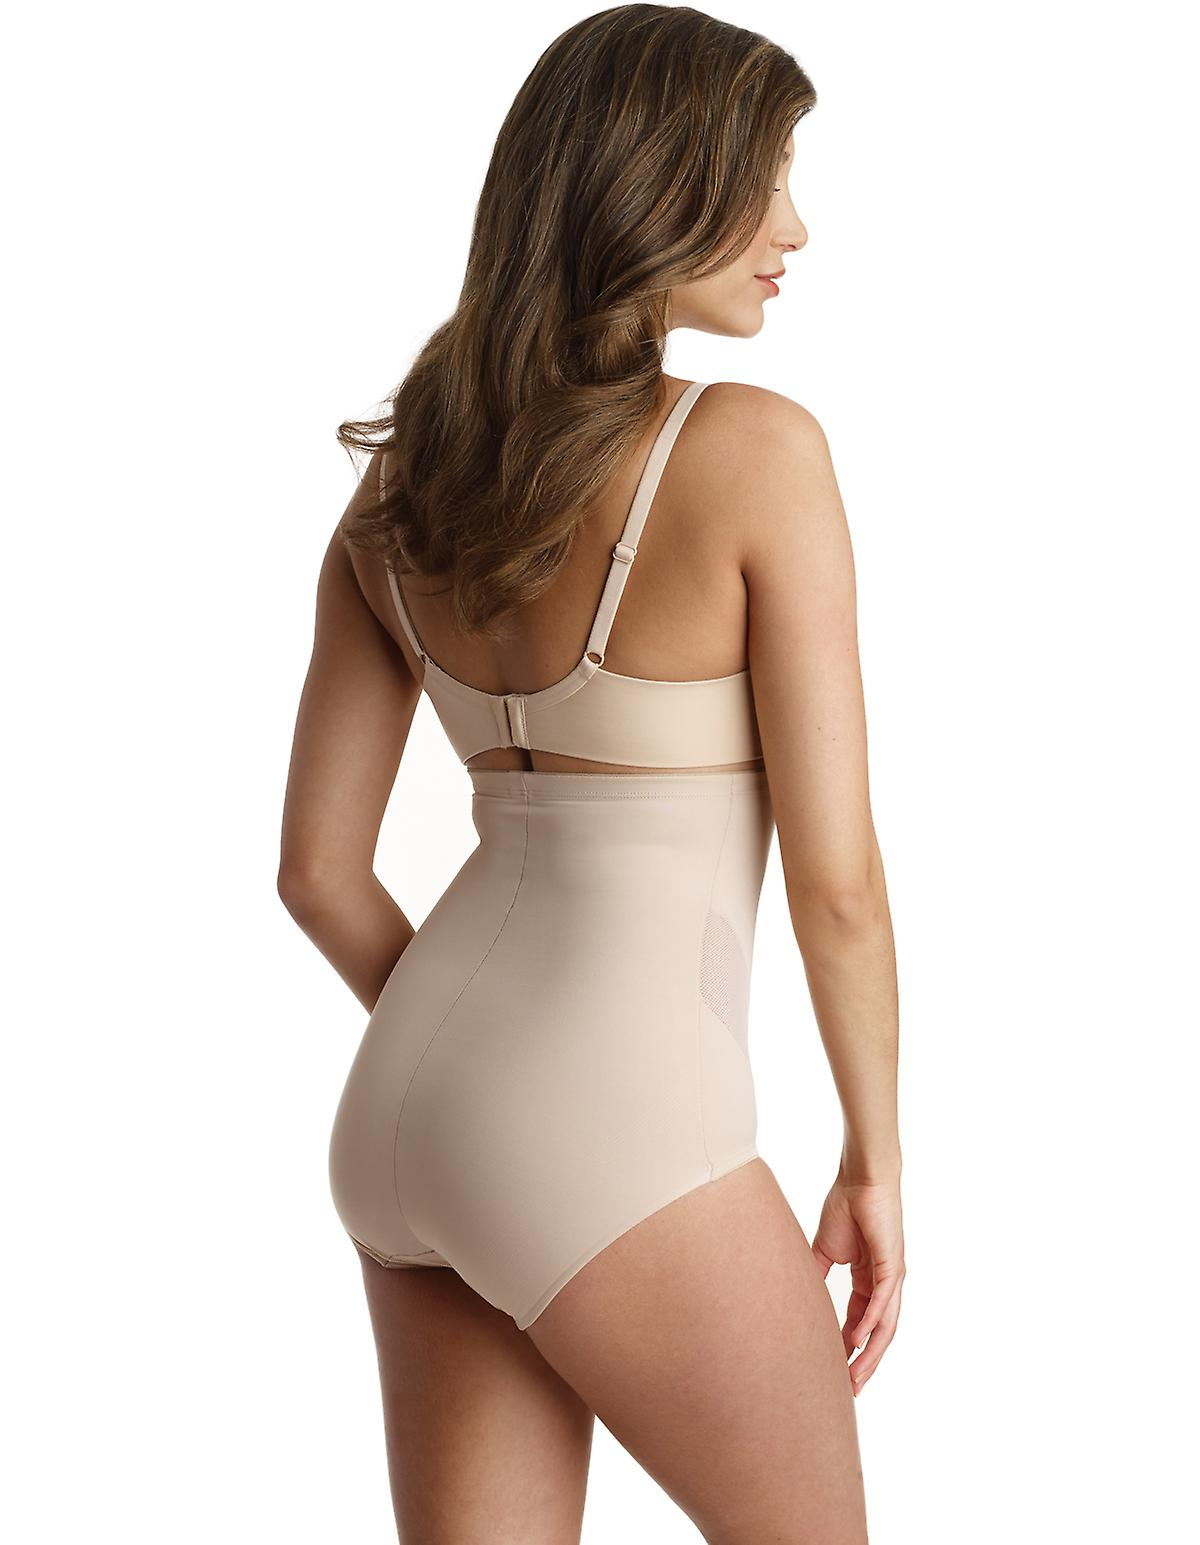 Naomi and Nicole 7425 Women's Shapewear Nude Solid Colour High Waist Brief